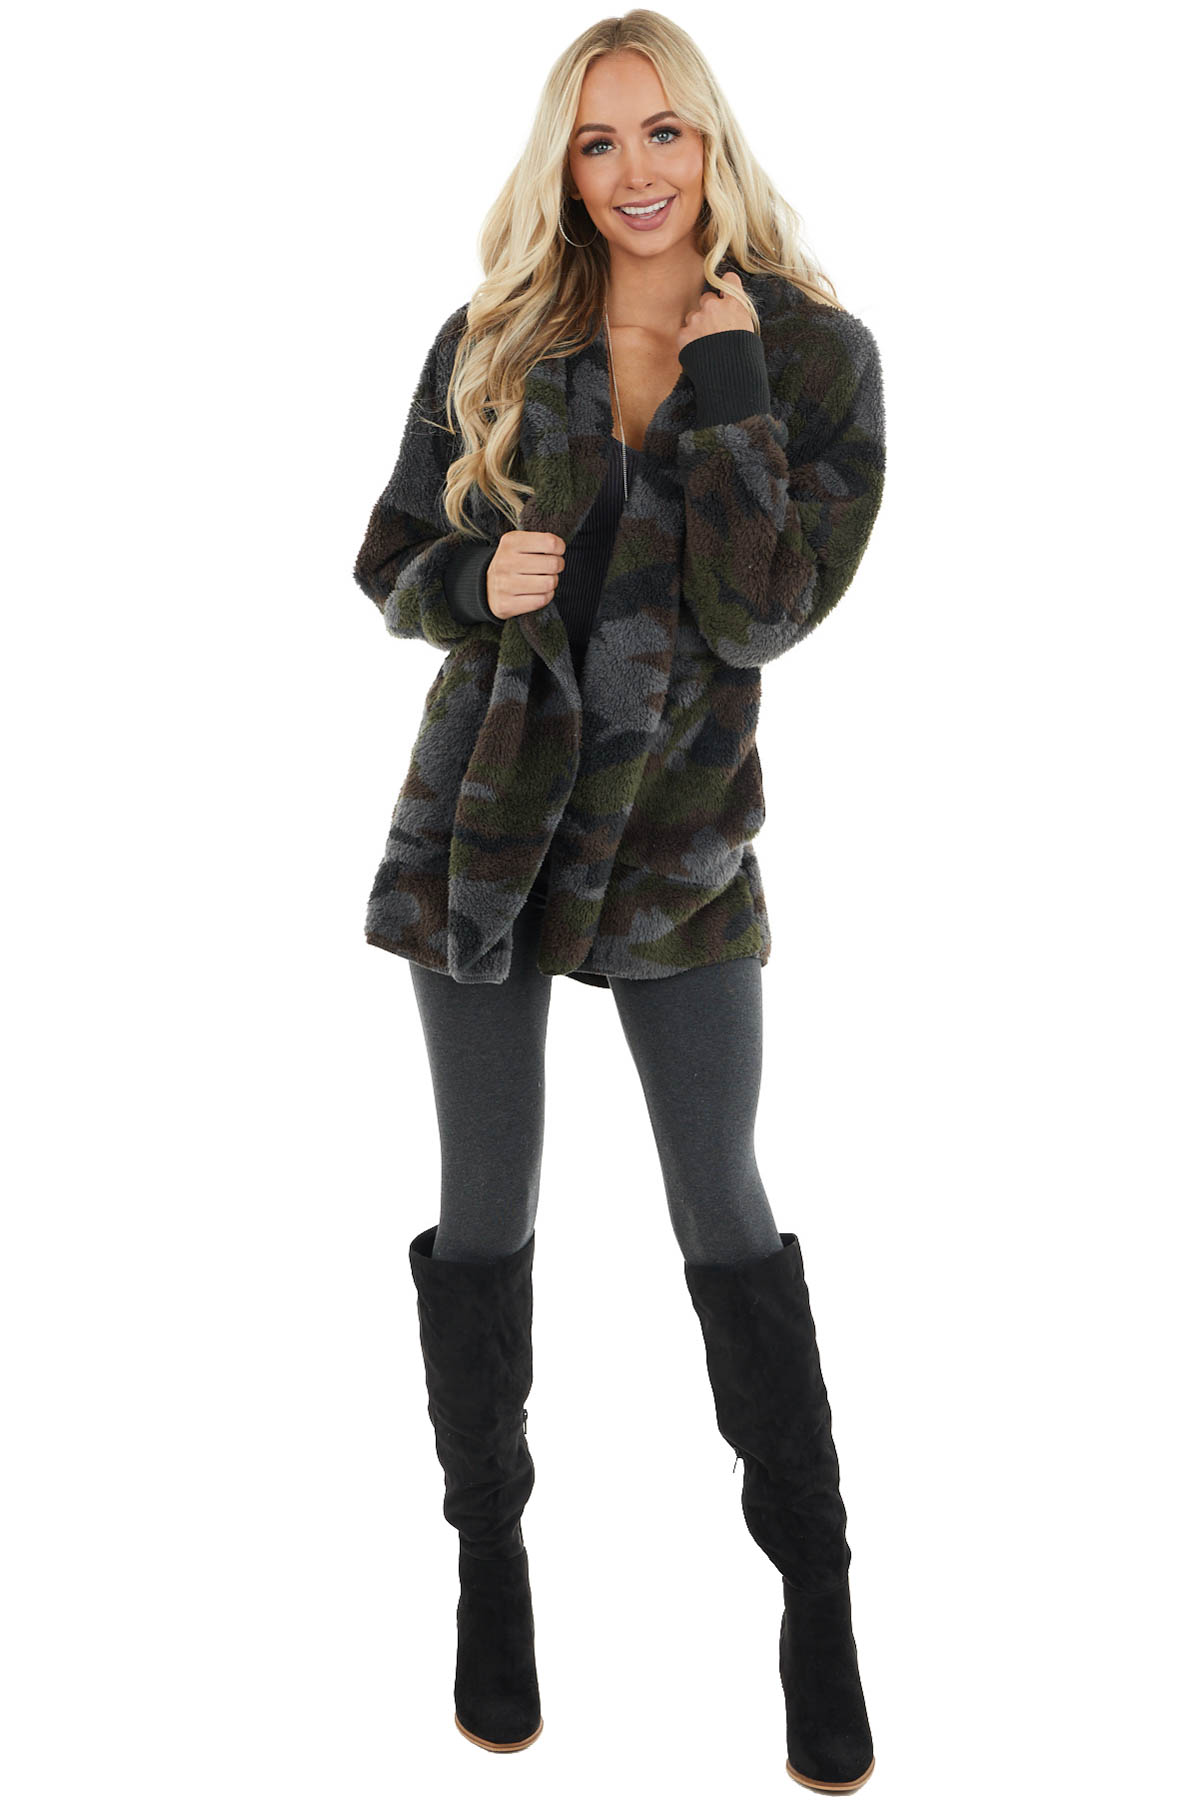 Forest Green Camo Faux Fur Cardigan with Hood and Pockets